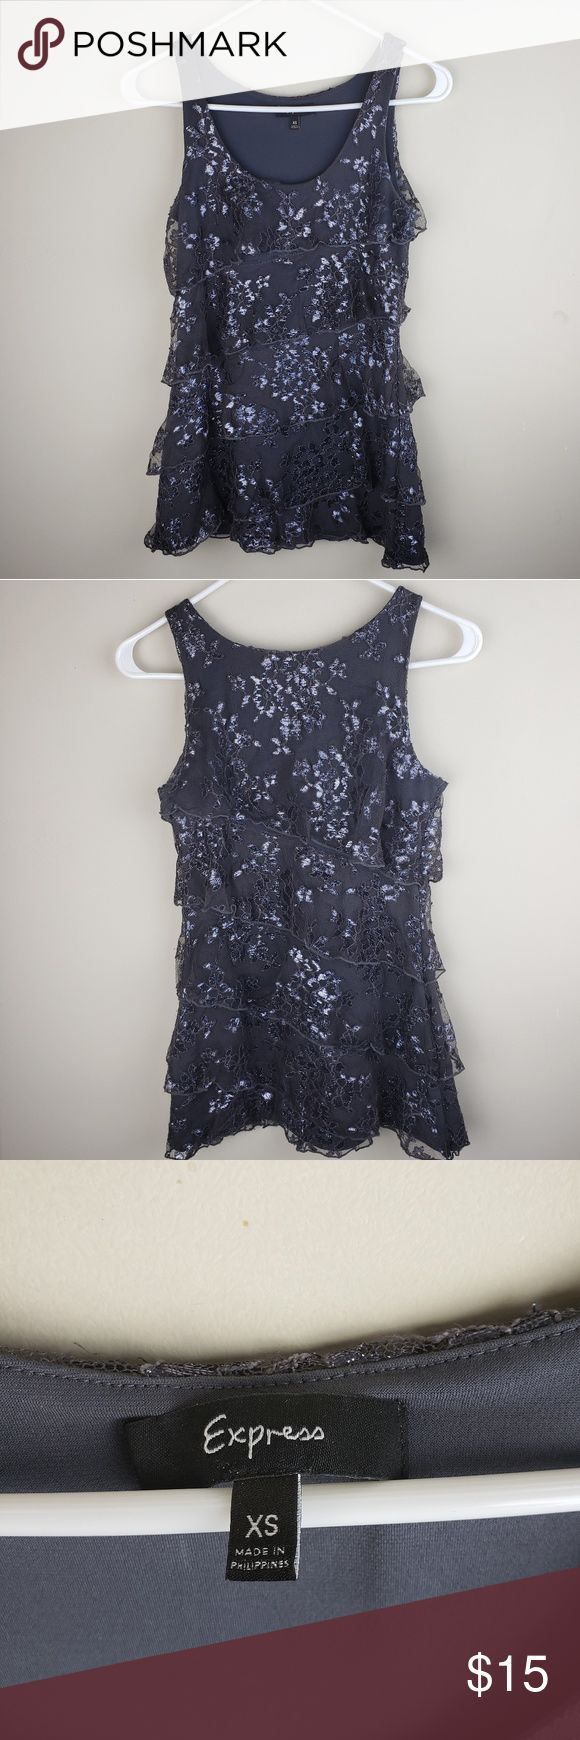 Express | Ruffle Floral Lace Sparkle Tank Top Express Top Women's  Size: X-S…